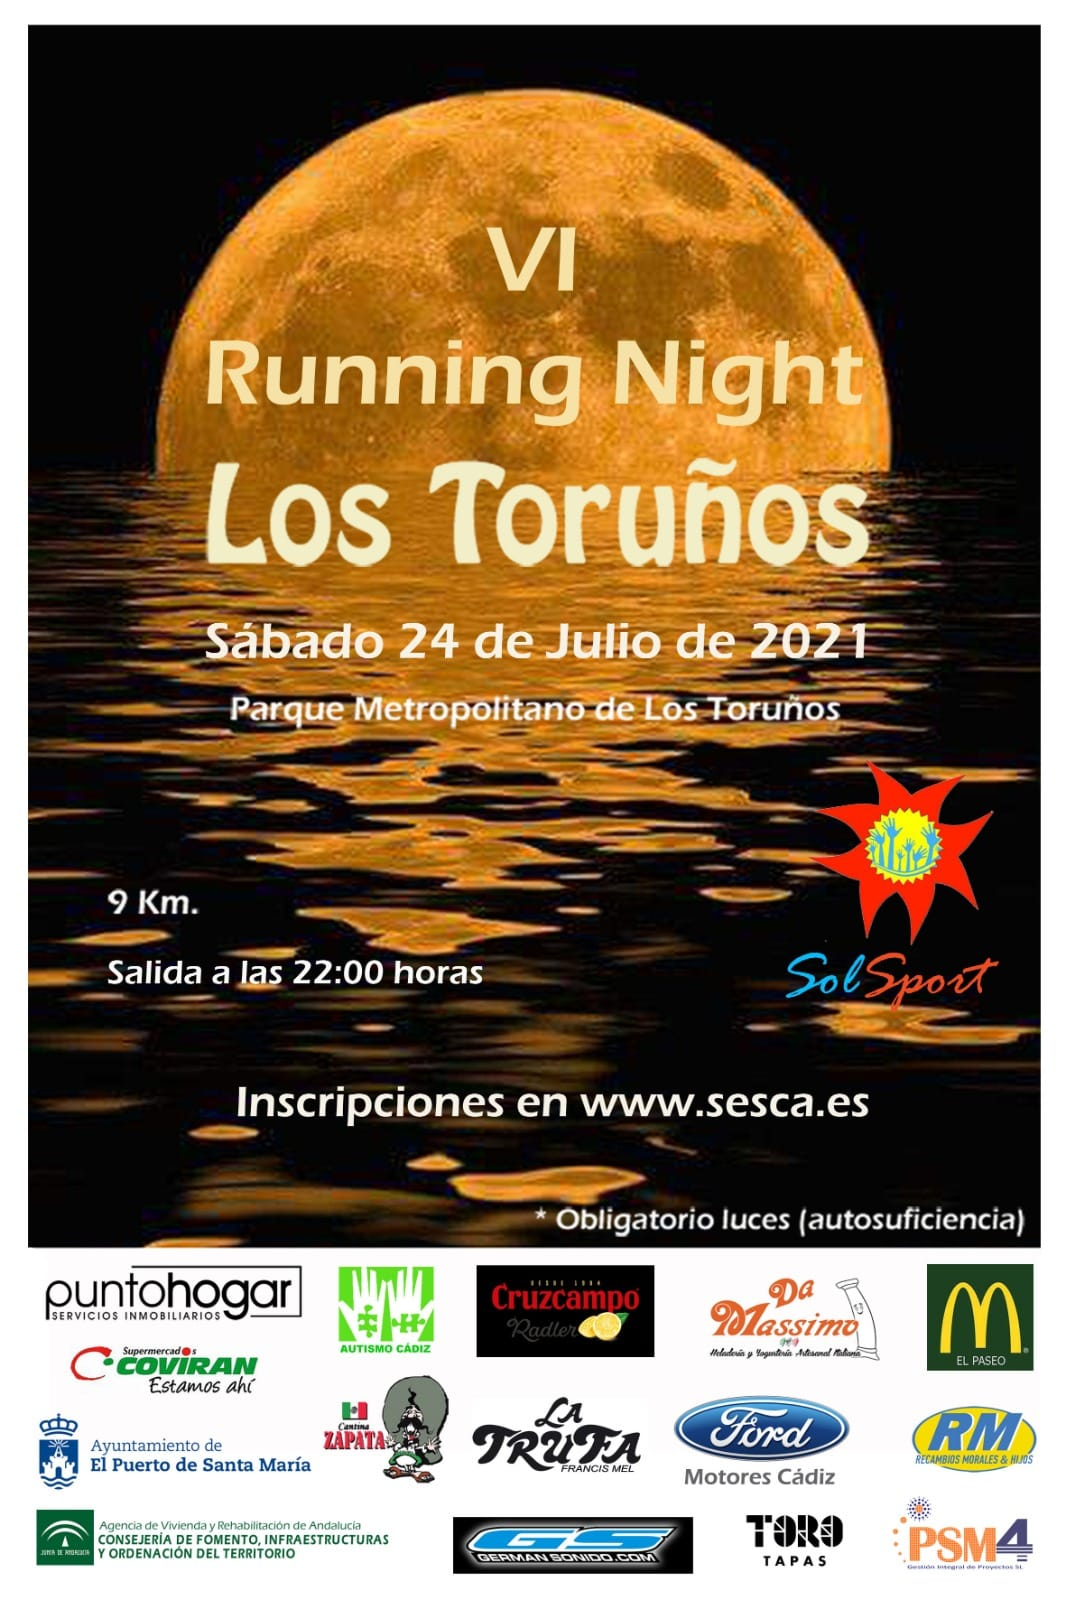 VI Running Night los Toruños